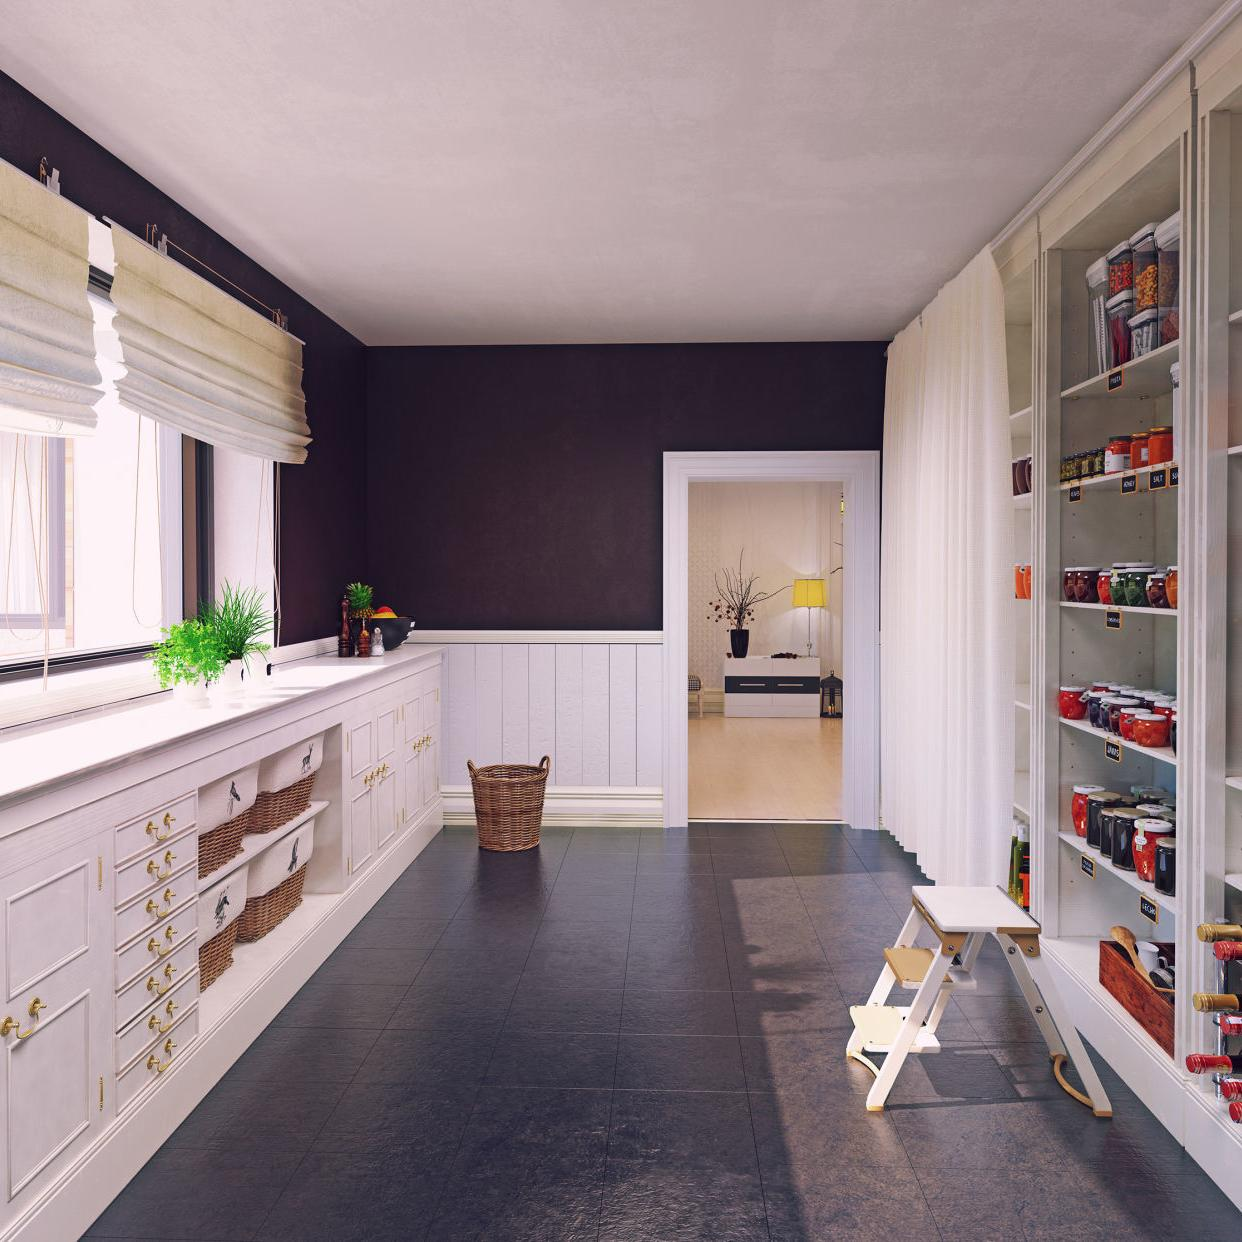 A Walk In Pantry Is Now The Most Popular Feature In The Kitchen